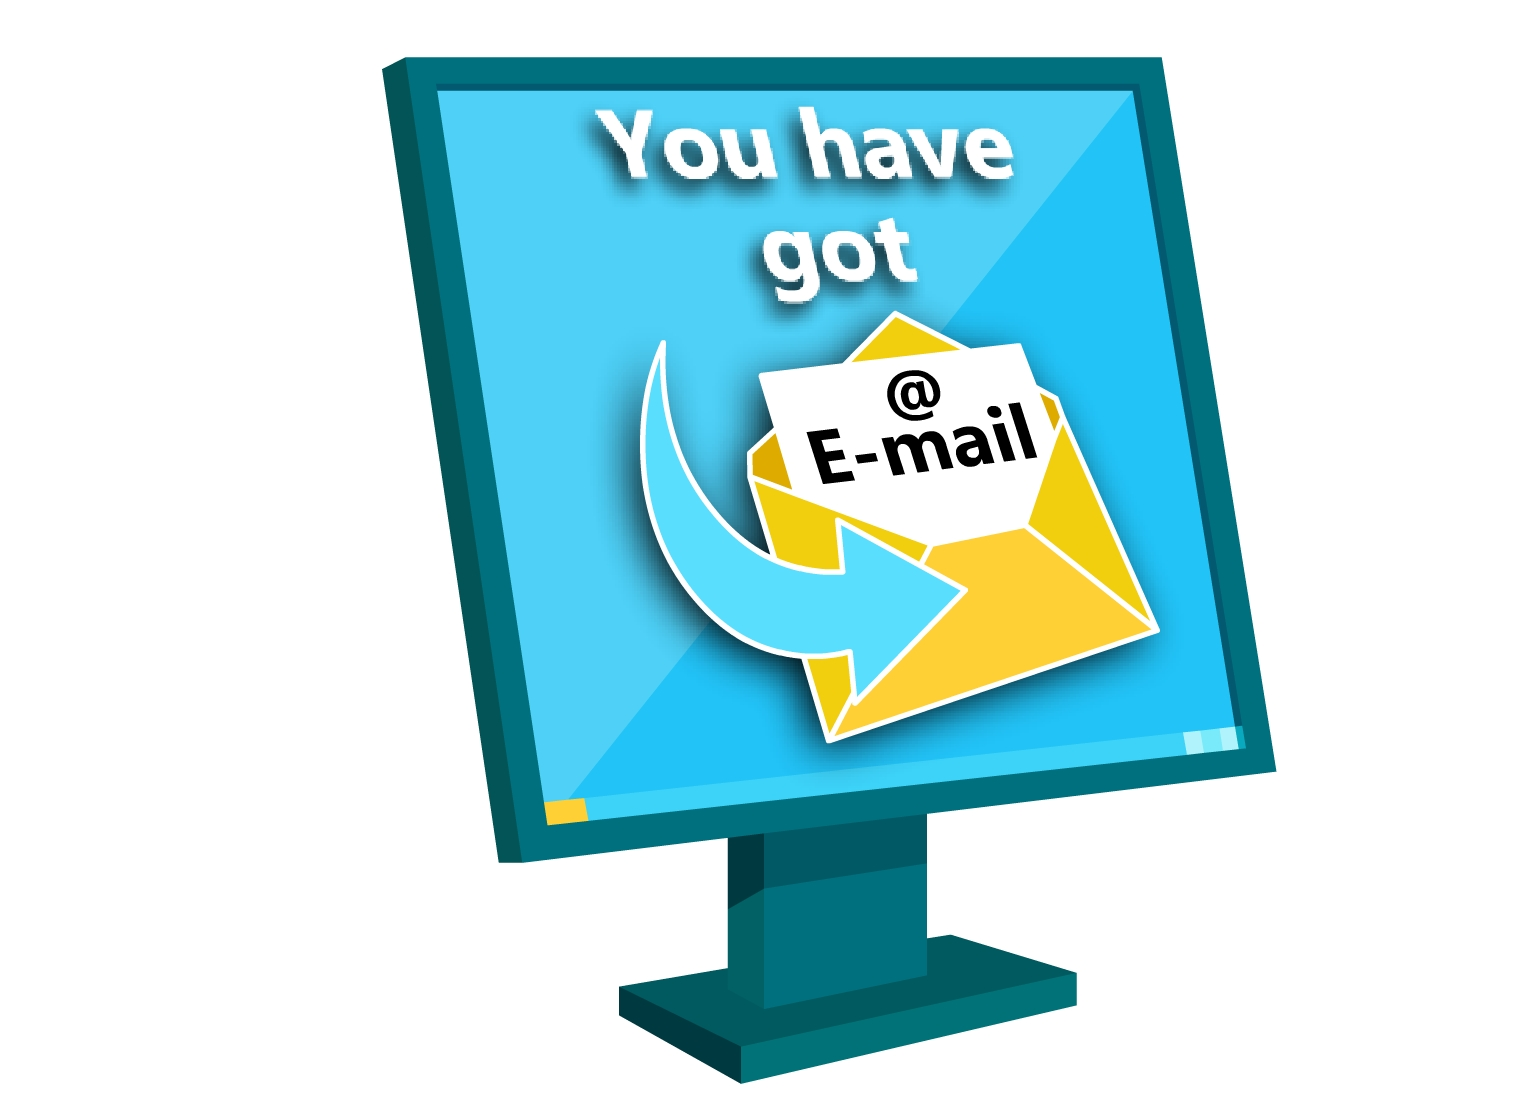 Email clipart. Free clip art pictures